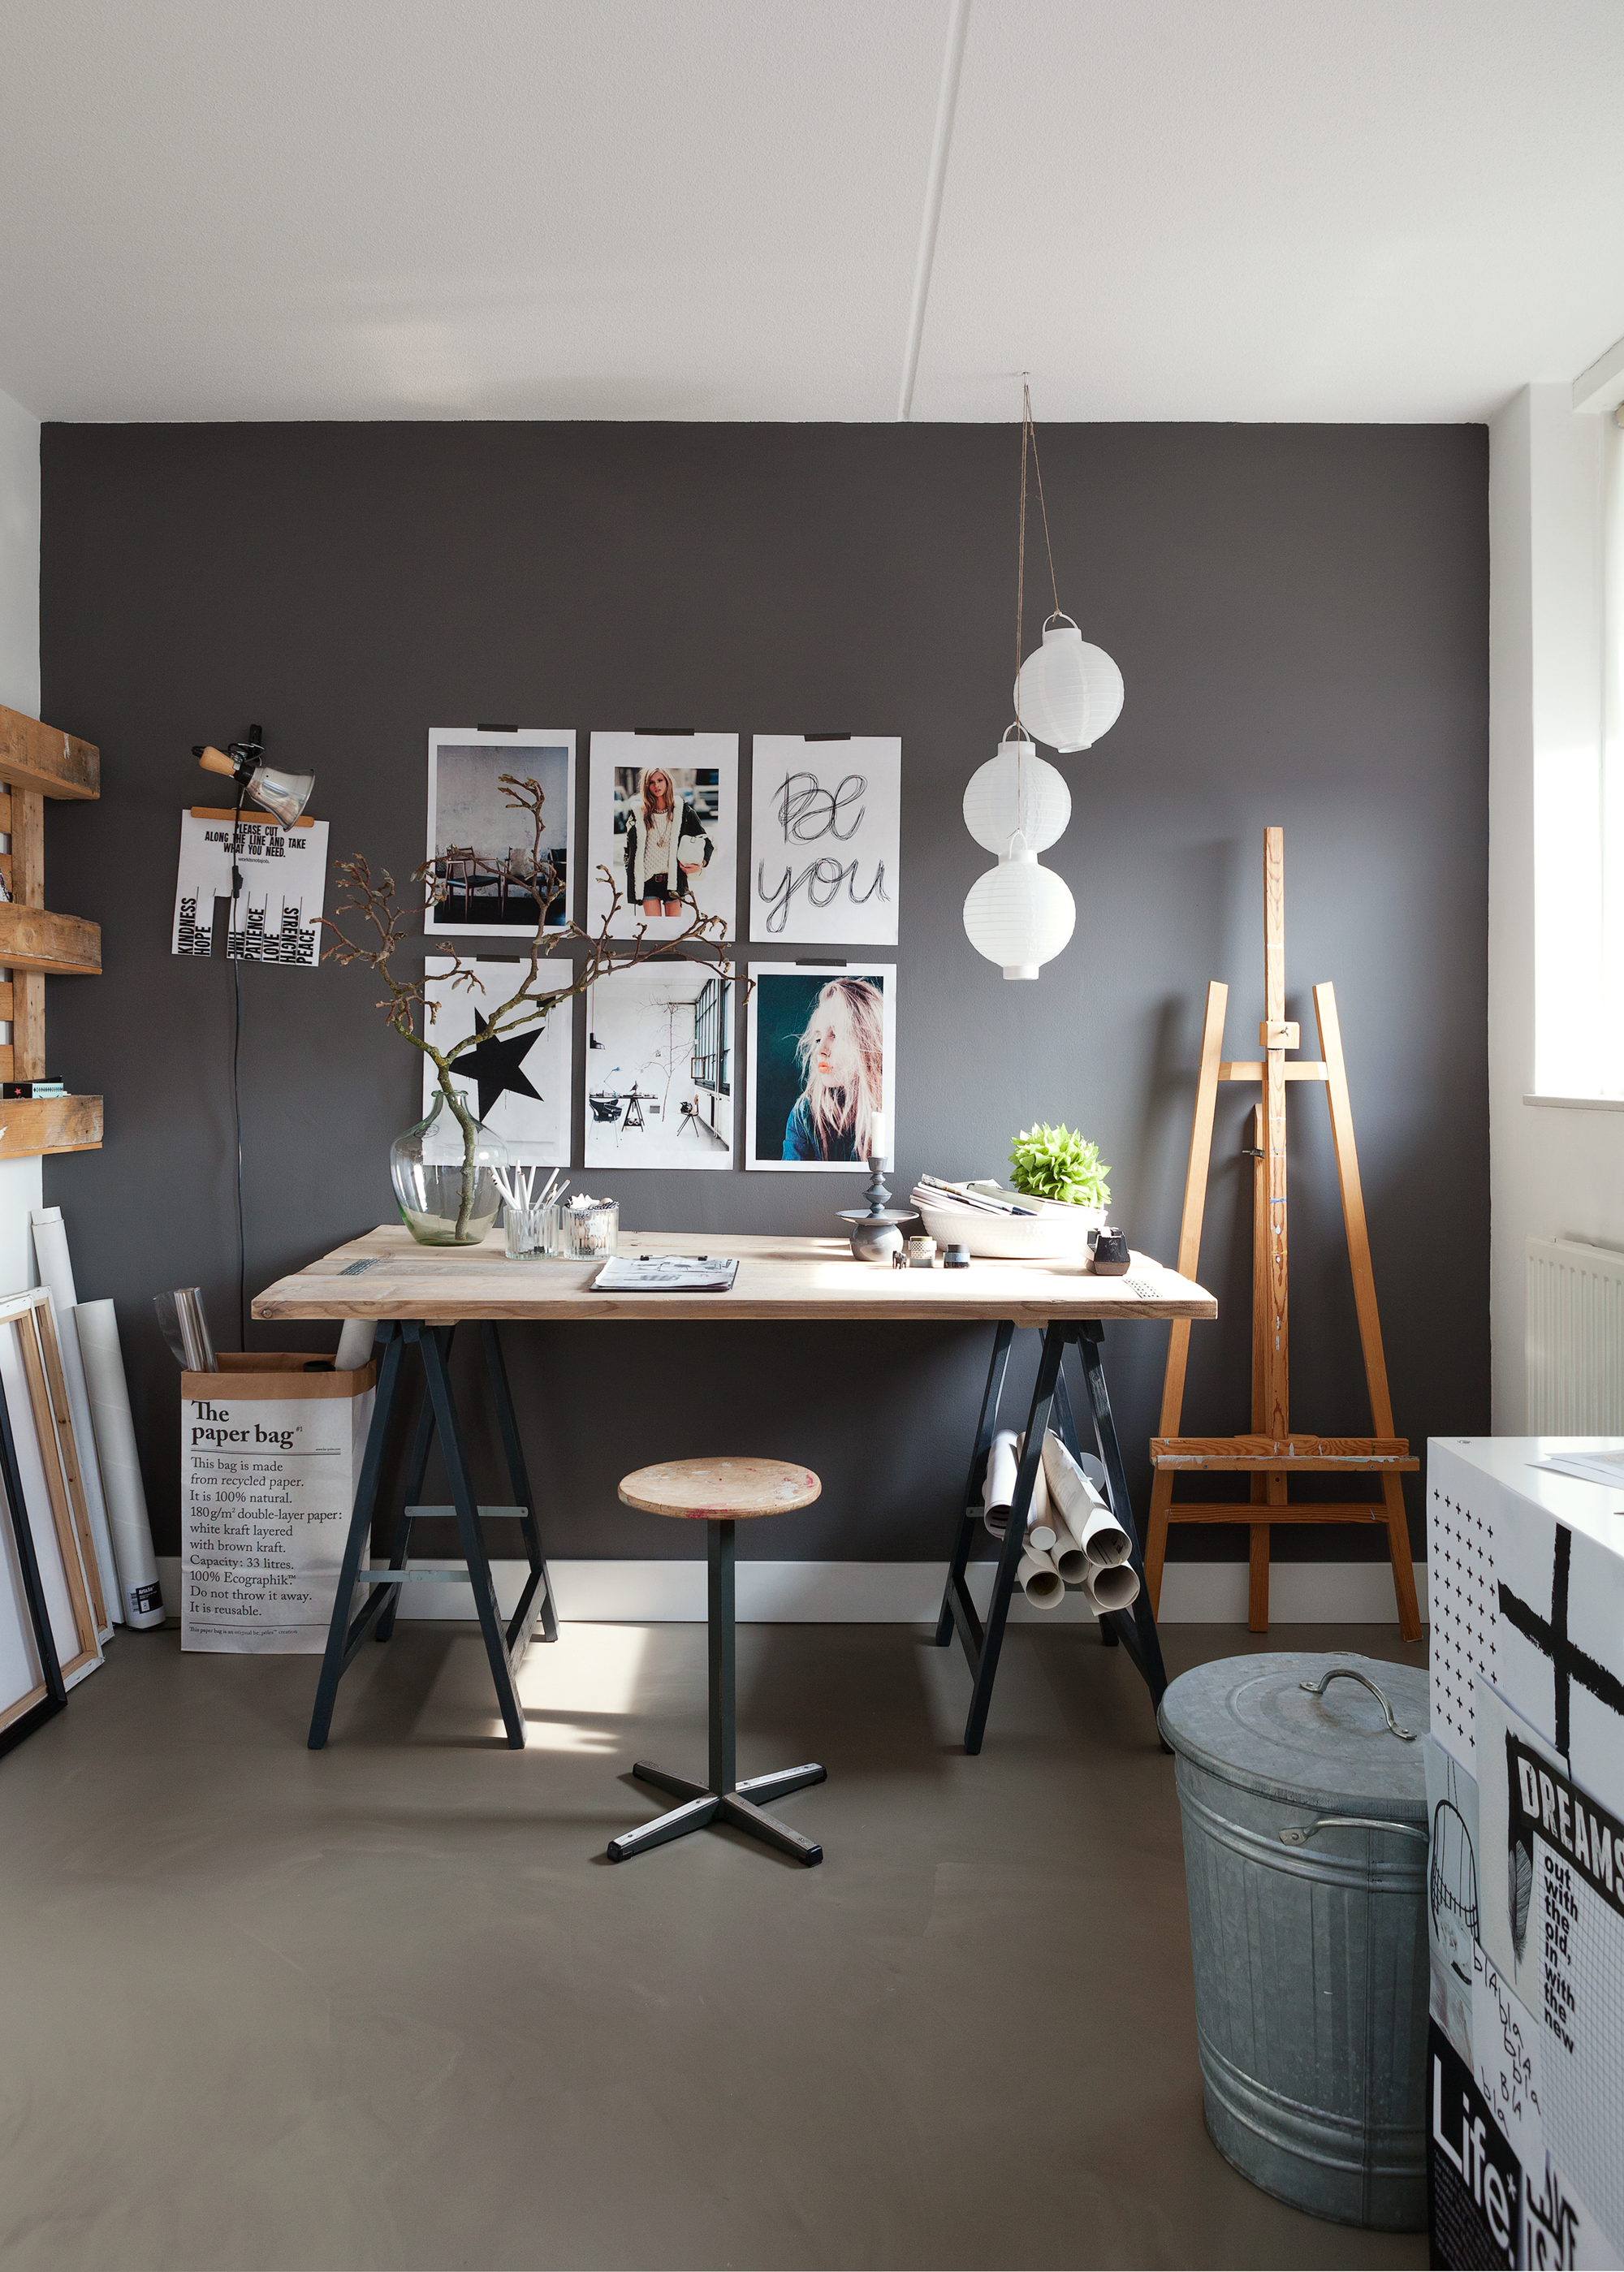 Chic and modern scheme · 4. Peaceful home office - Daily Dream Decor